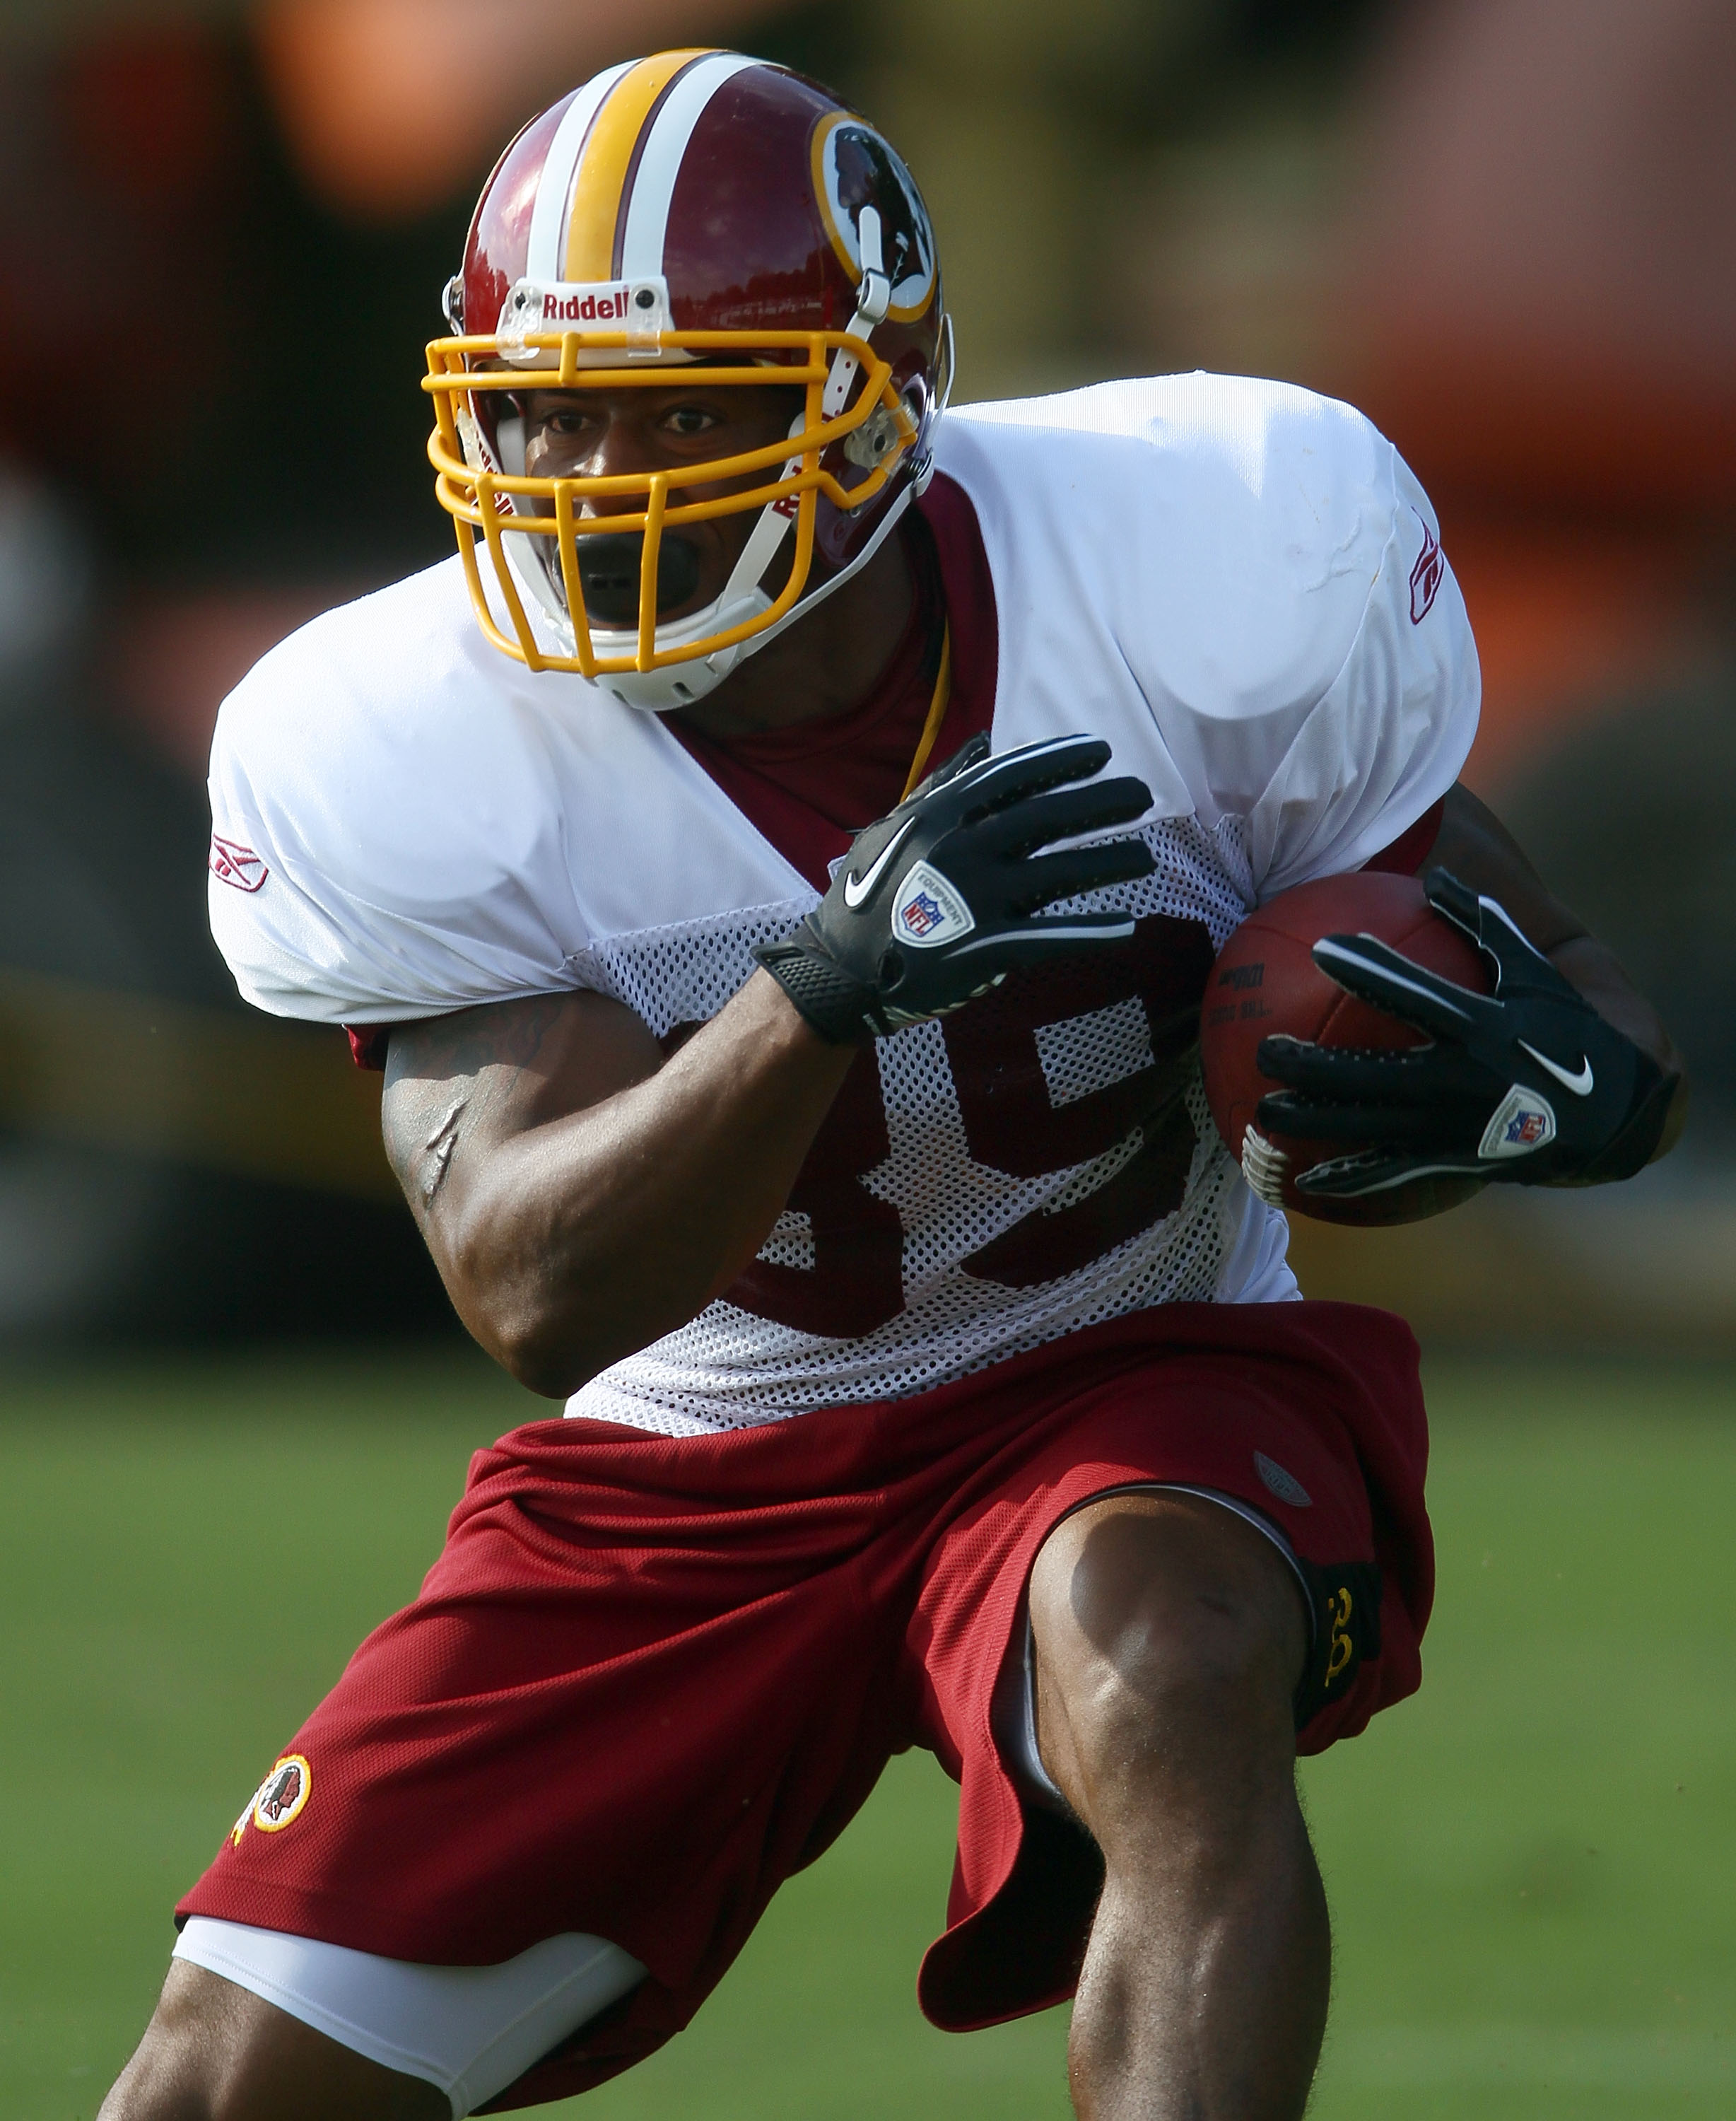 ASHBURN, VA - JULY 30:  Running back Willie Parker #39 of the Washington Redskins carries the ball during drills on the second day of training camp July 30, 2010 in Ashburn, Virginia.  (Photo by Win McNamee/Getty Images)